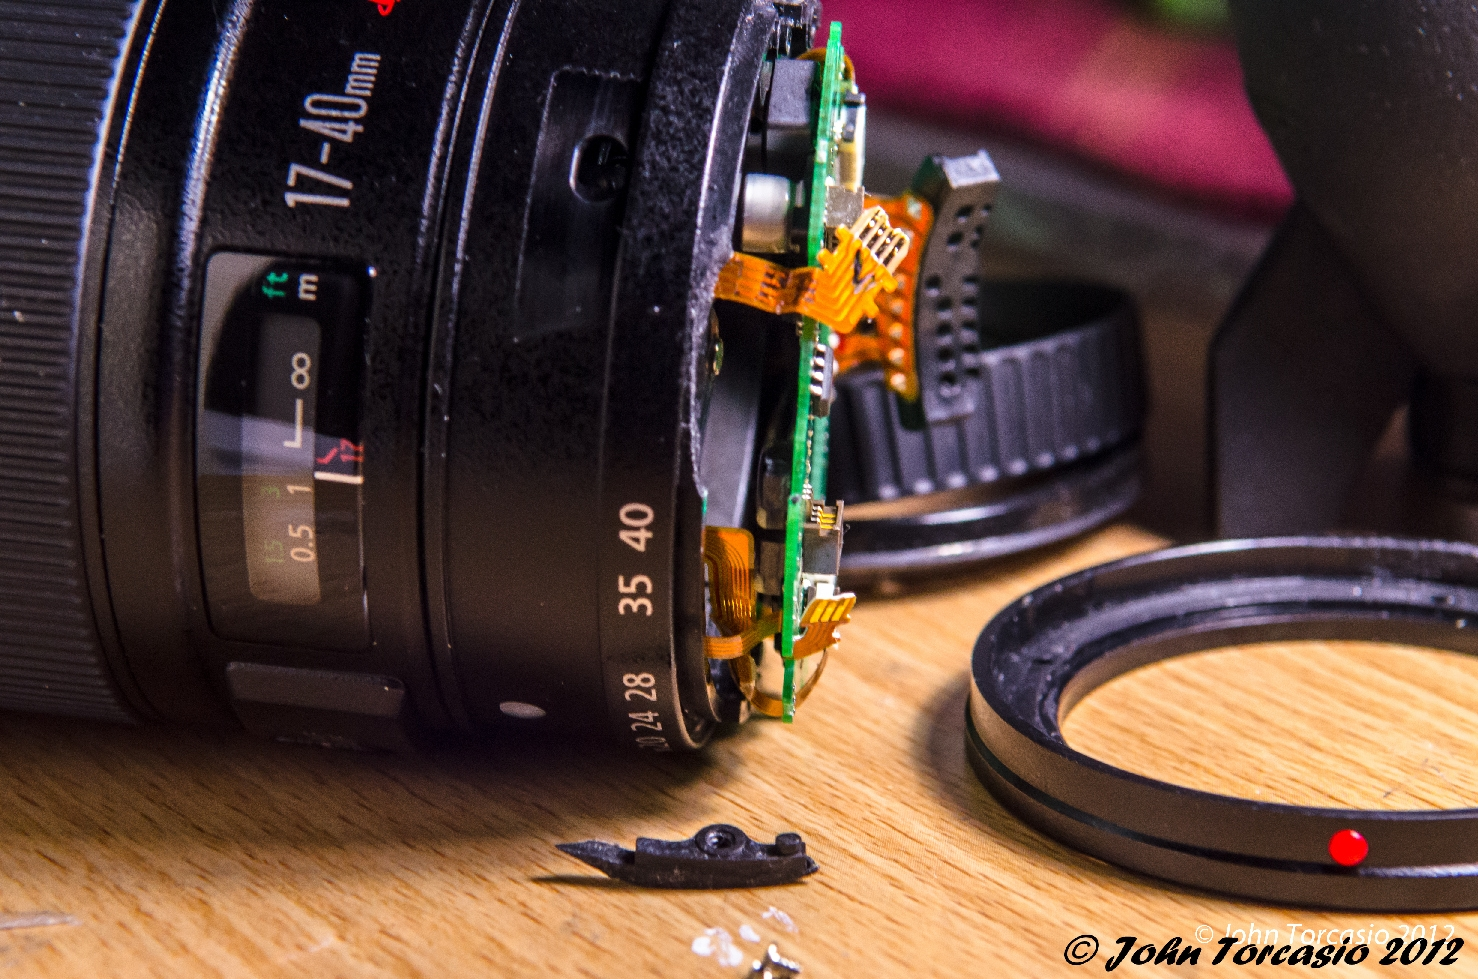 Canon Lens 17-40mm EF f4L USM with broken off piece of the sleeve barrel assembly